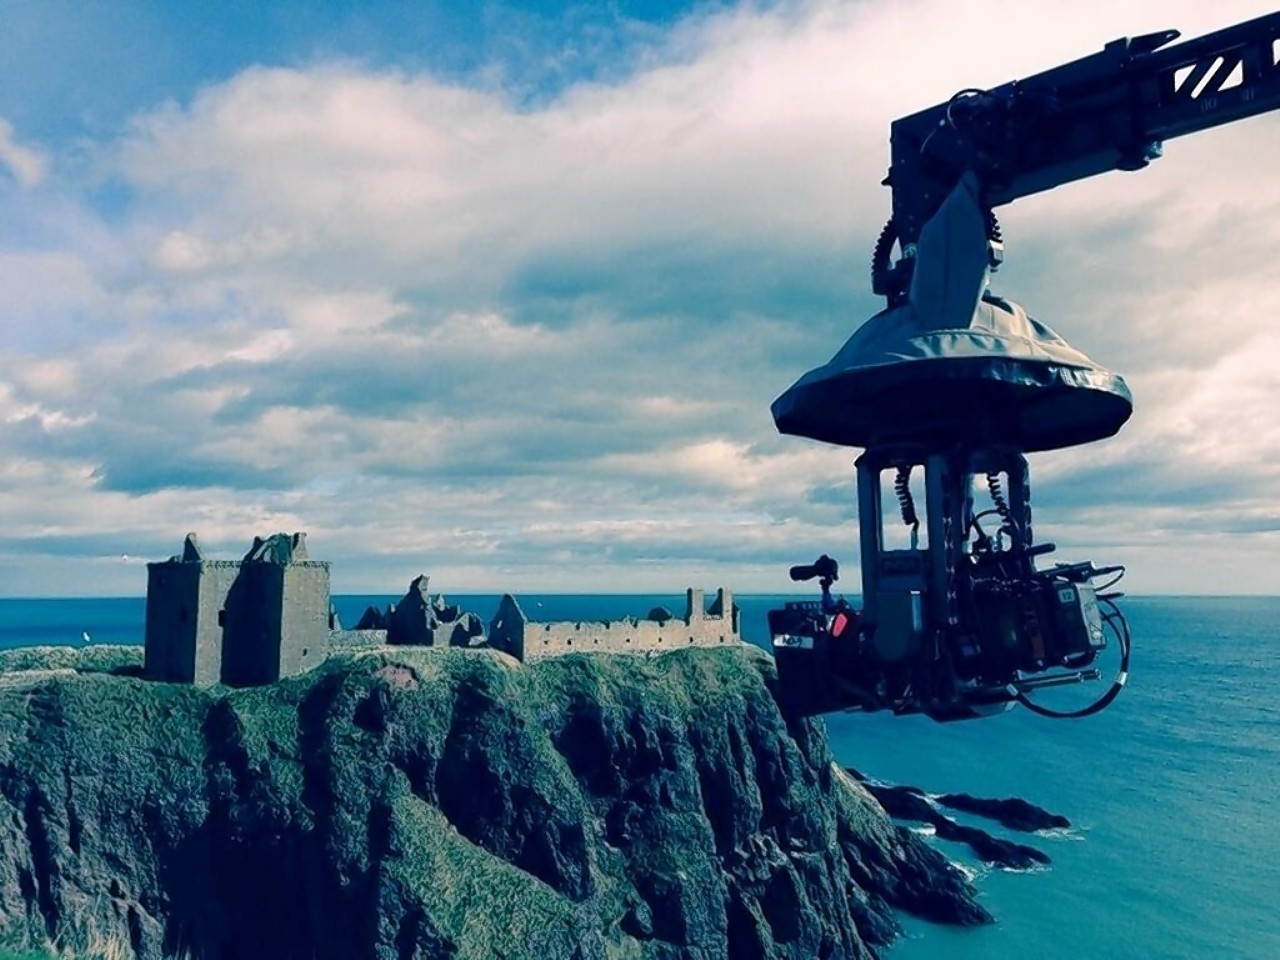 Picture from Paul McGuigan's Twitter feed showing filming for the Frankenstein remake at Dunnottar Castle